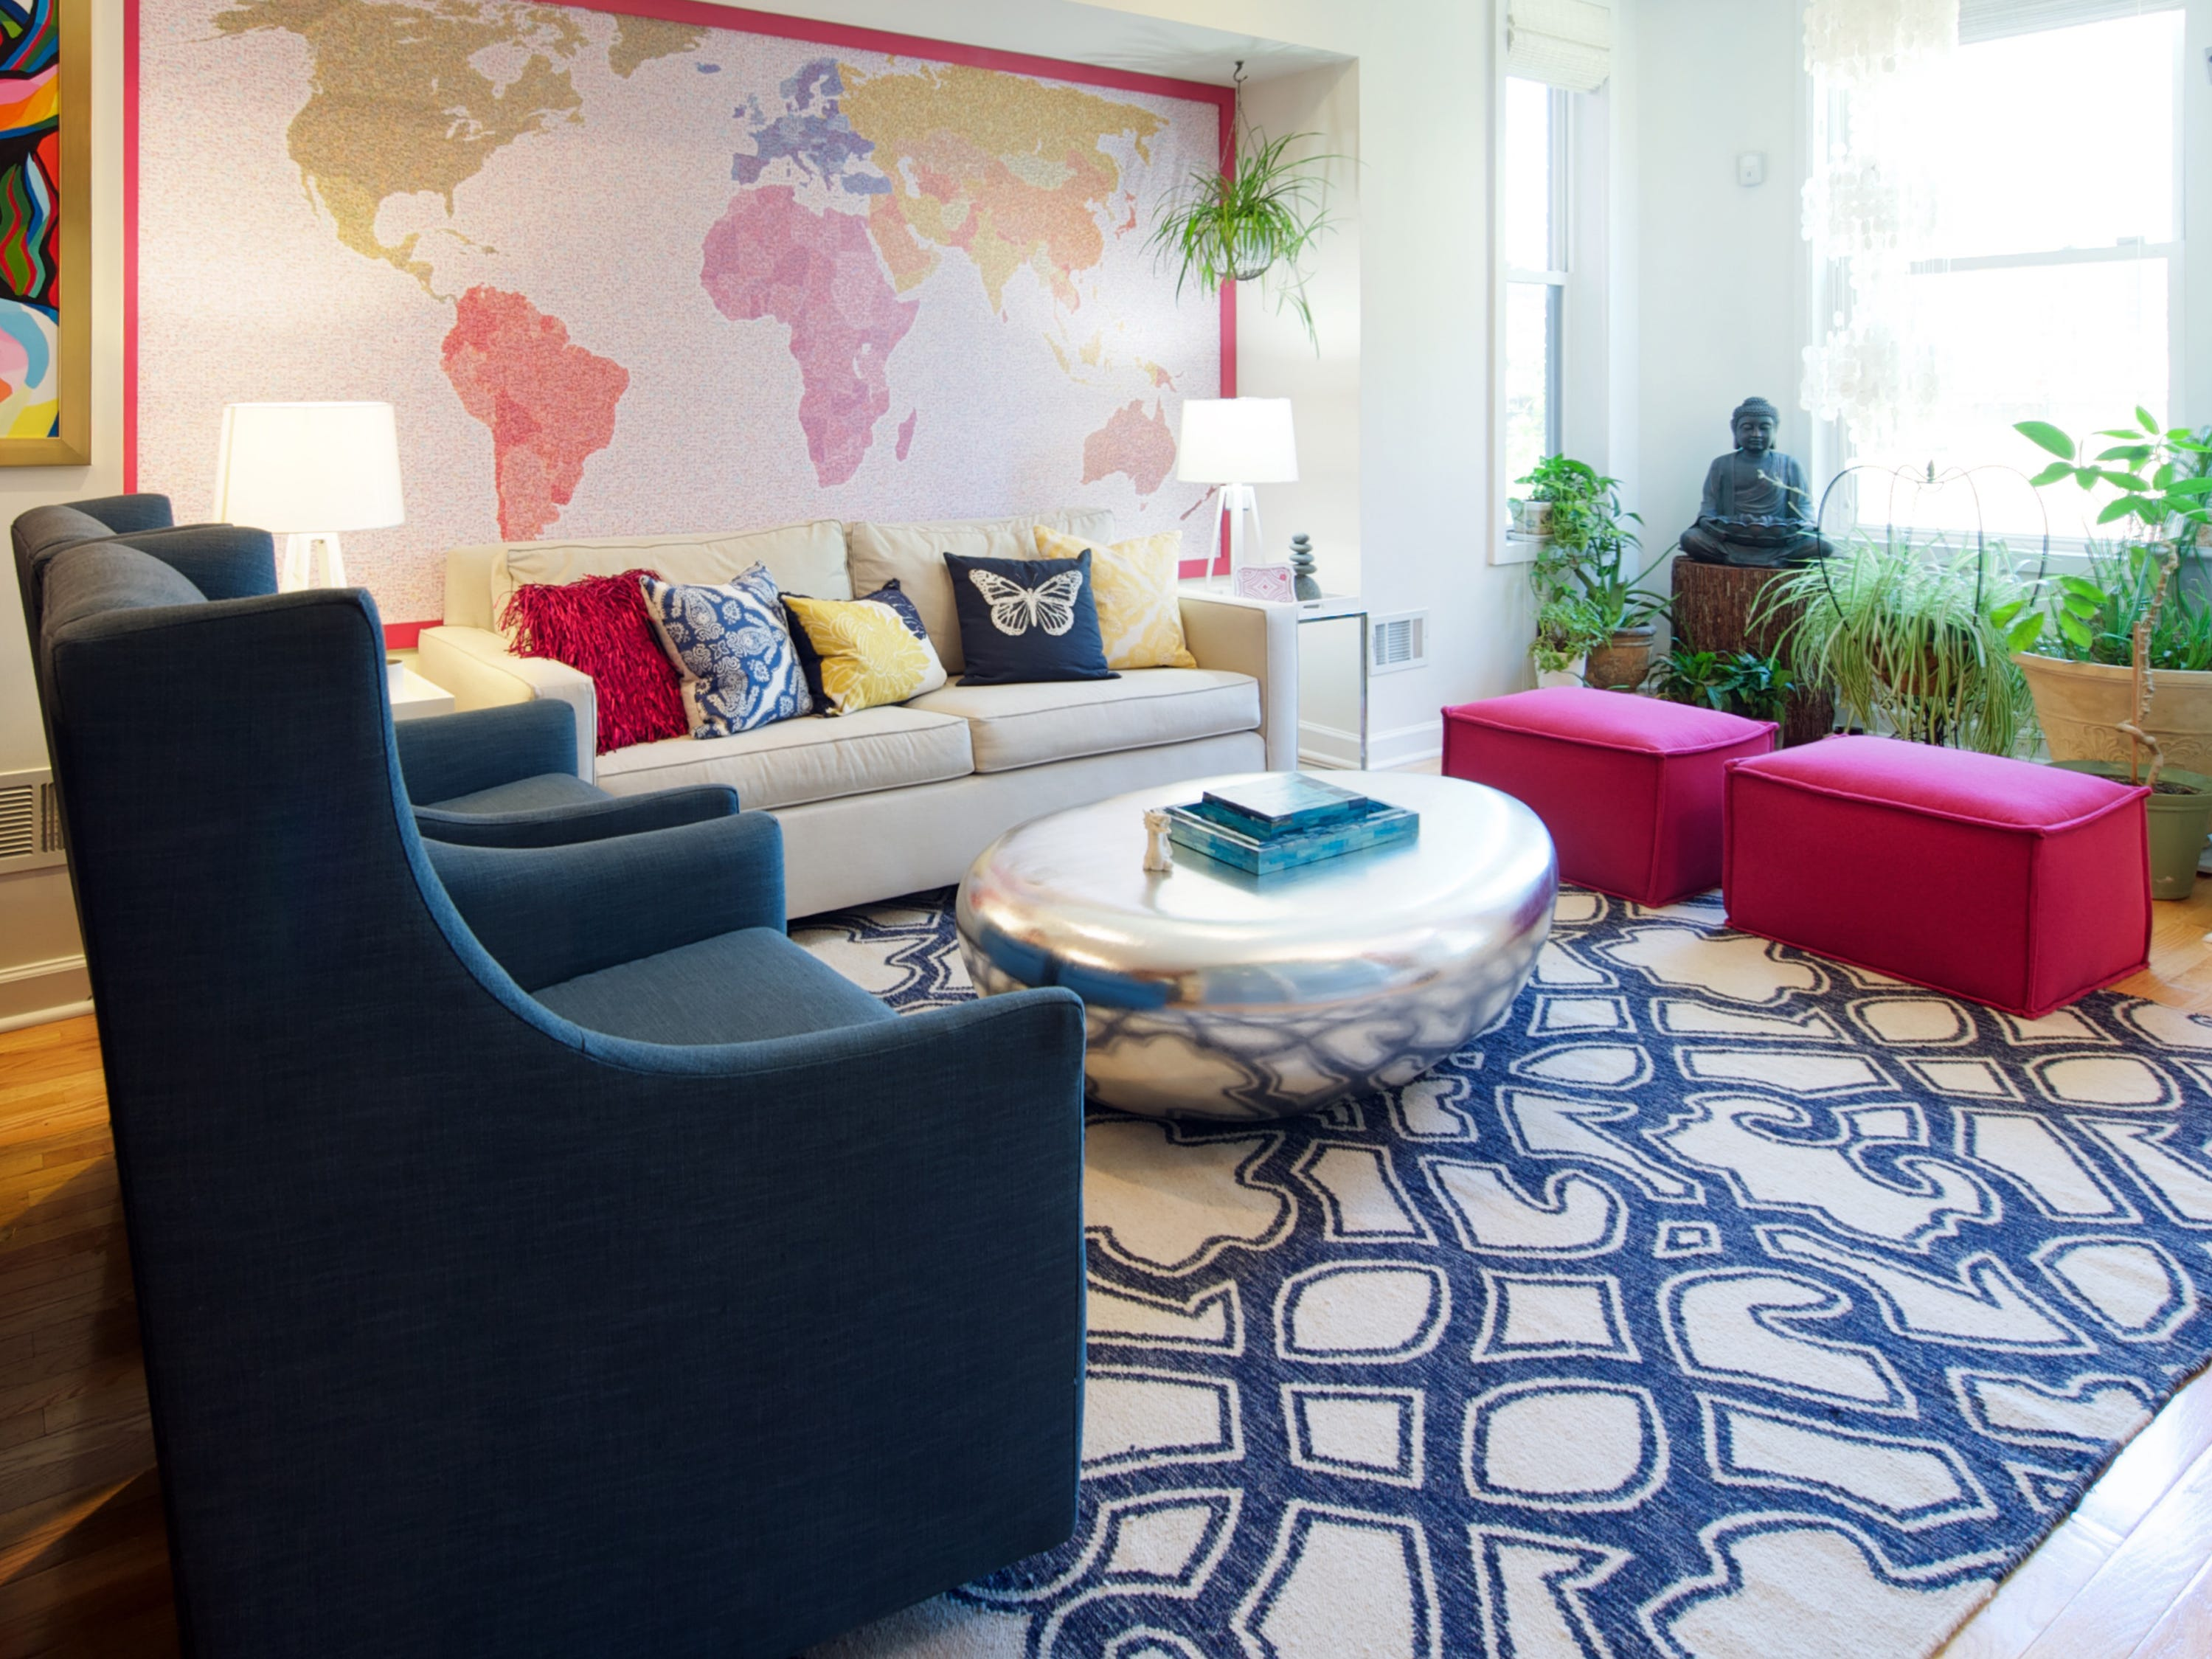 This colorful living room features furniture that meets SFC sustainability guidelines. It was an entry from Olamar Interiors in SFC's Get Your Green On interior design competition.